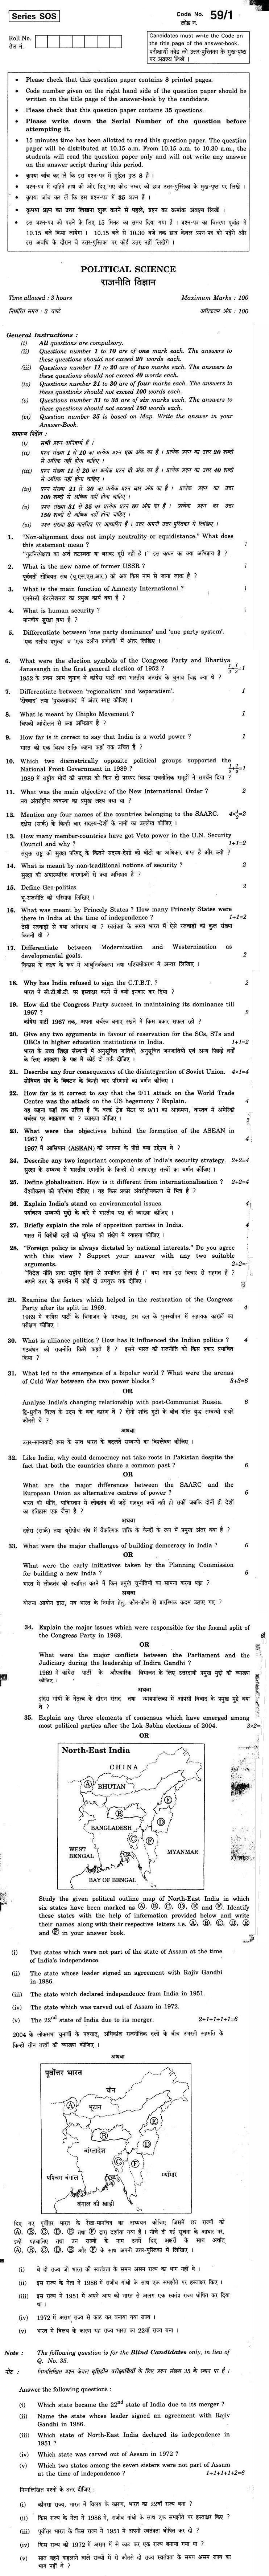 CBSE Class XII Previous Year Question Papers 2011 Political Science